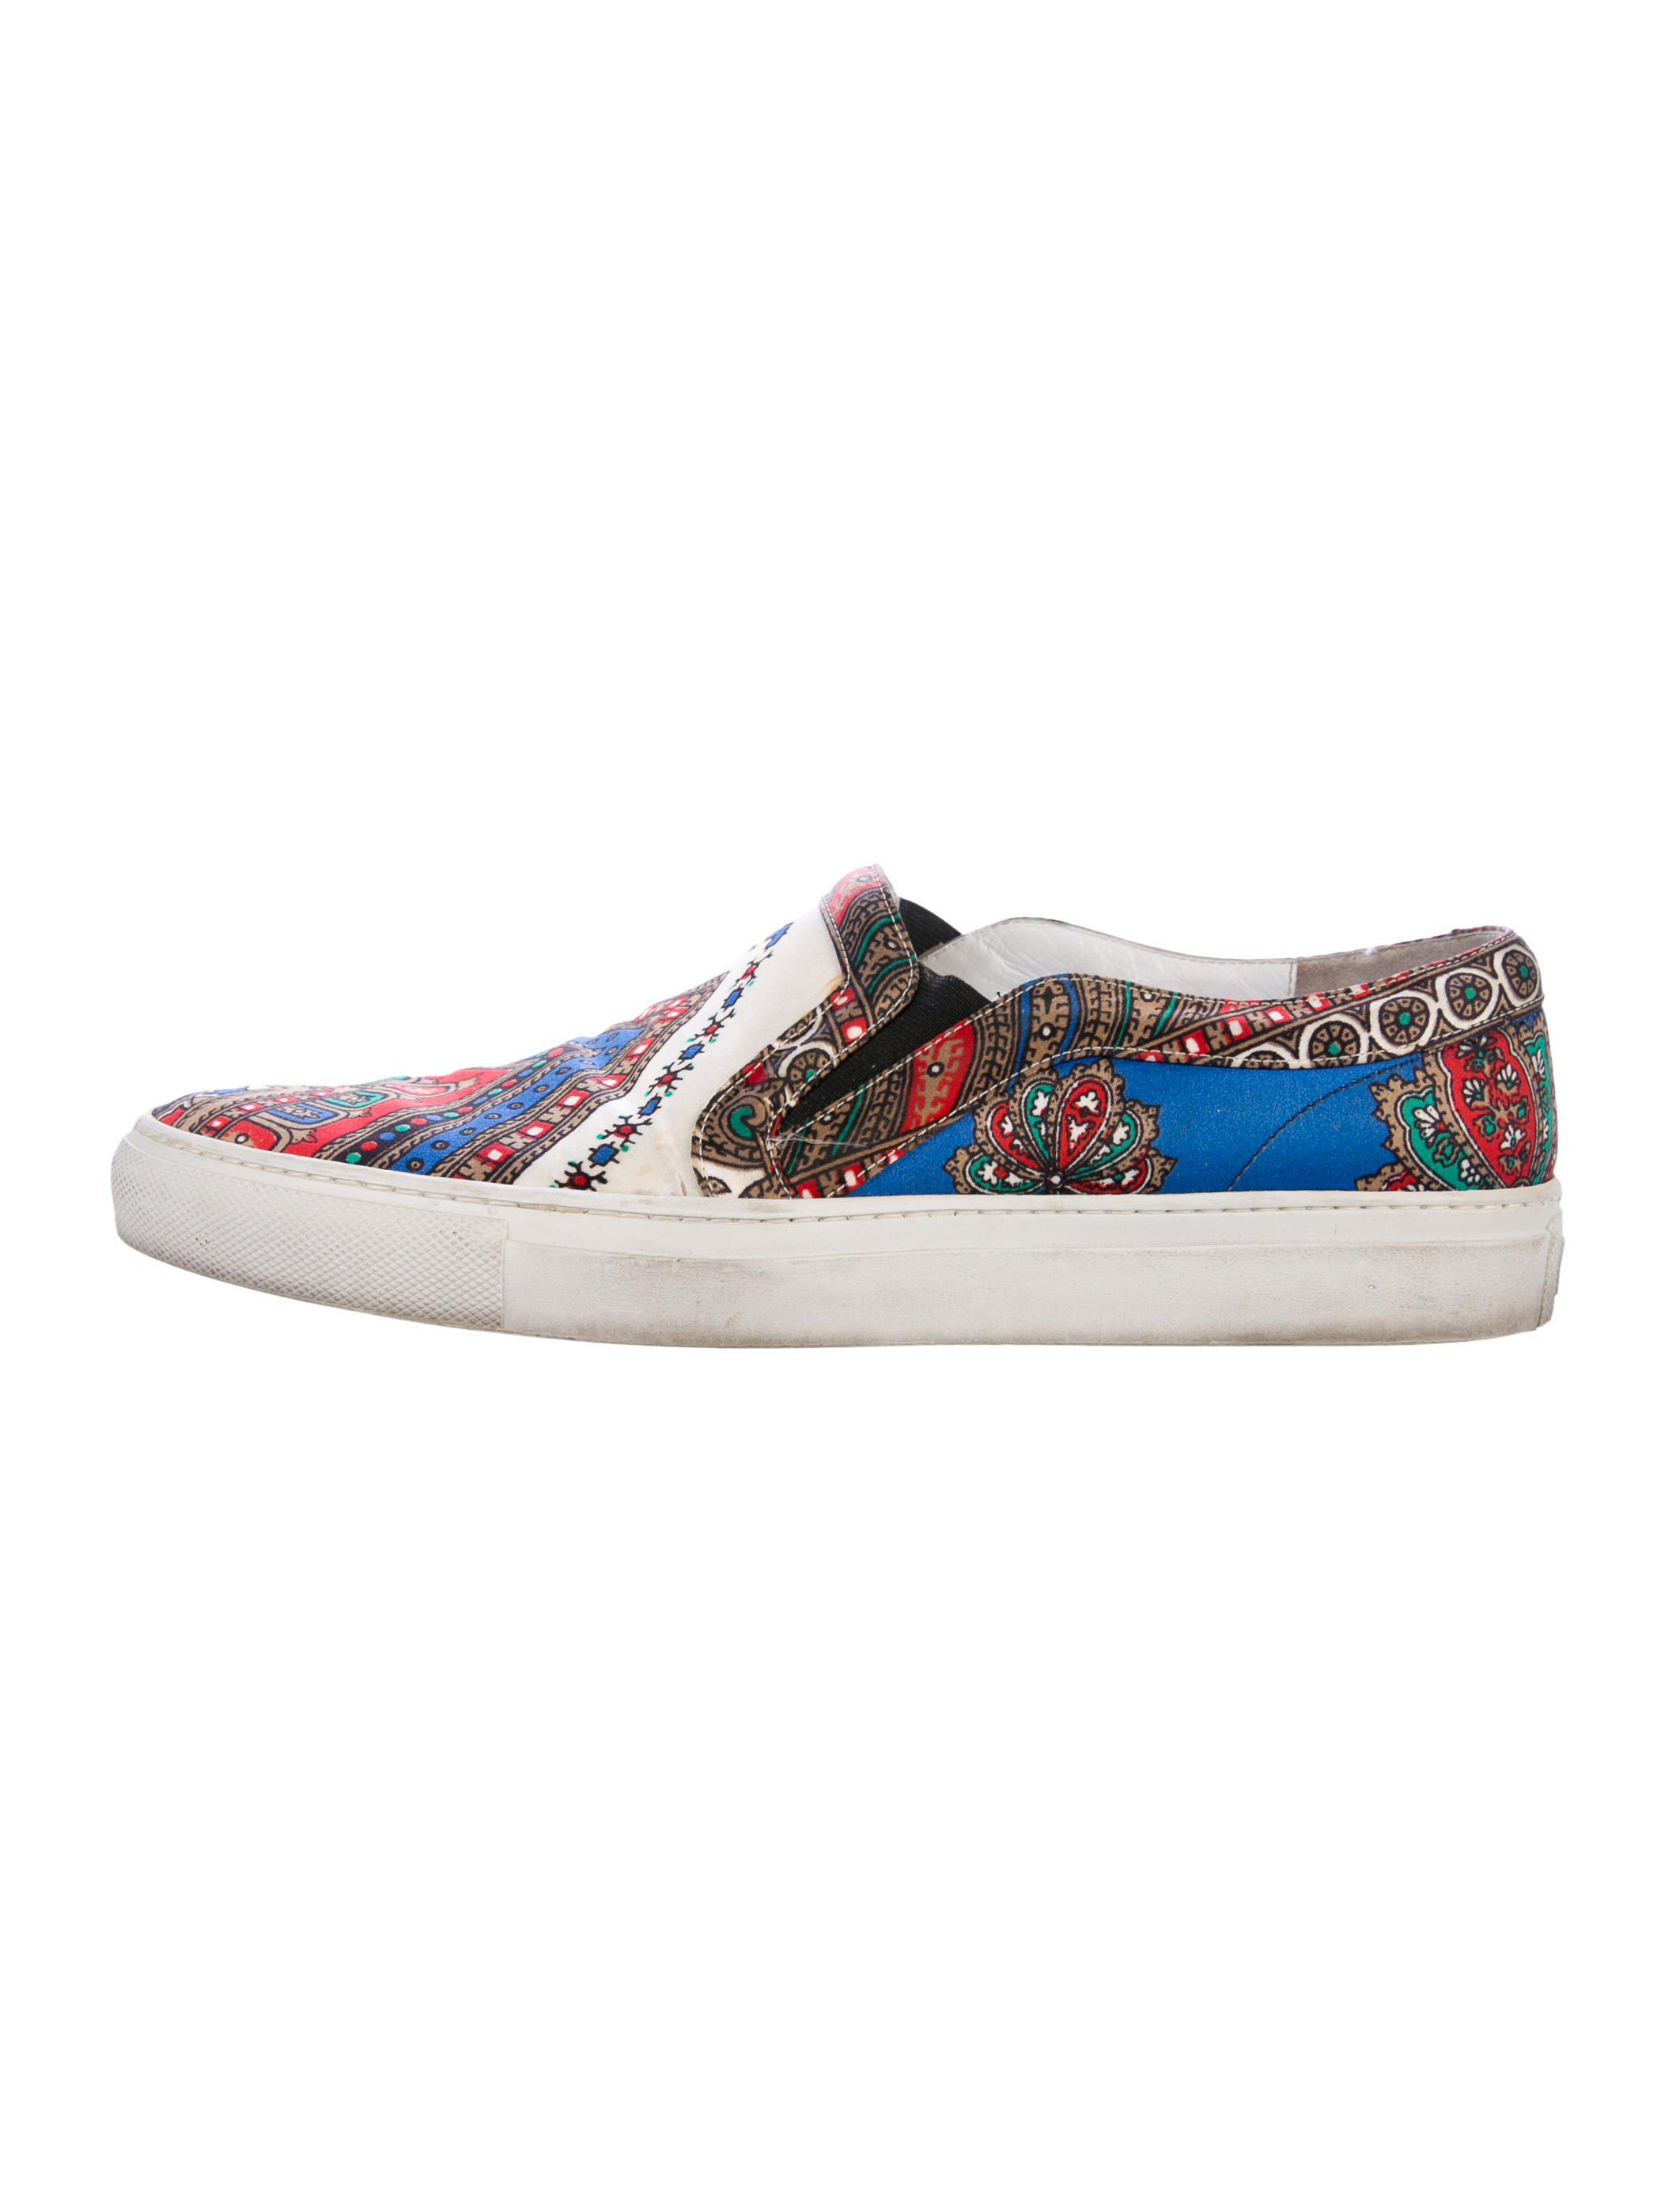 Givenchy Satin Slip On Sneakers free shipping under $60 manchester great sale online free shipping really sale 2015 new 9MJuEjR7Bt